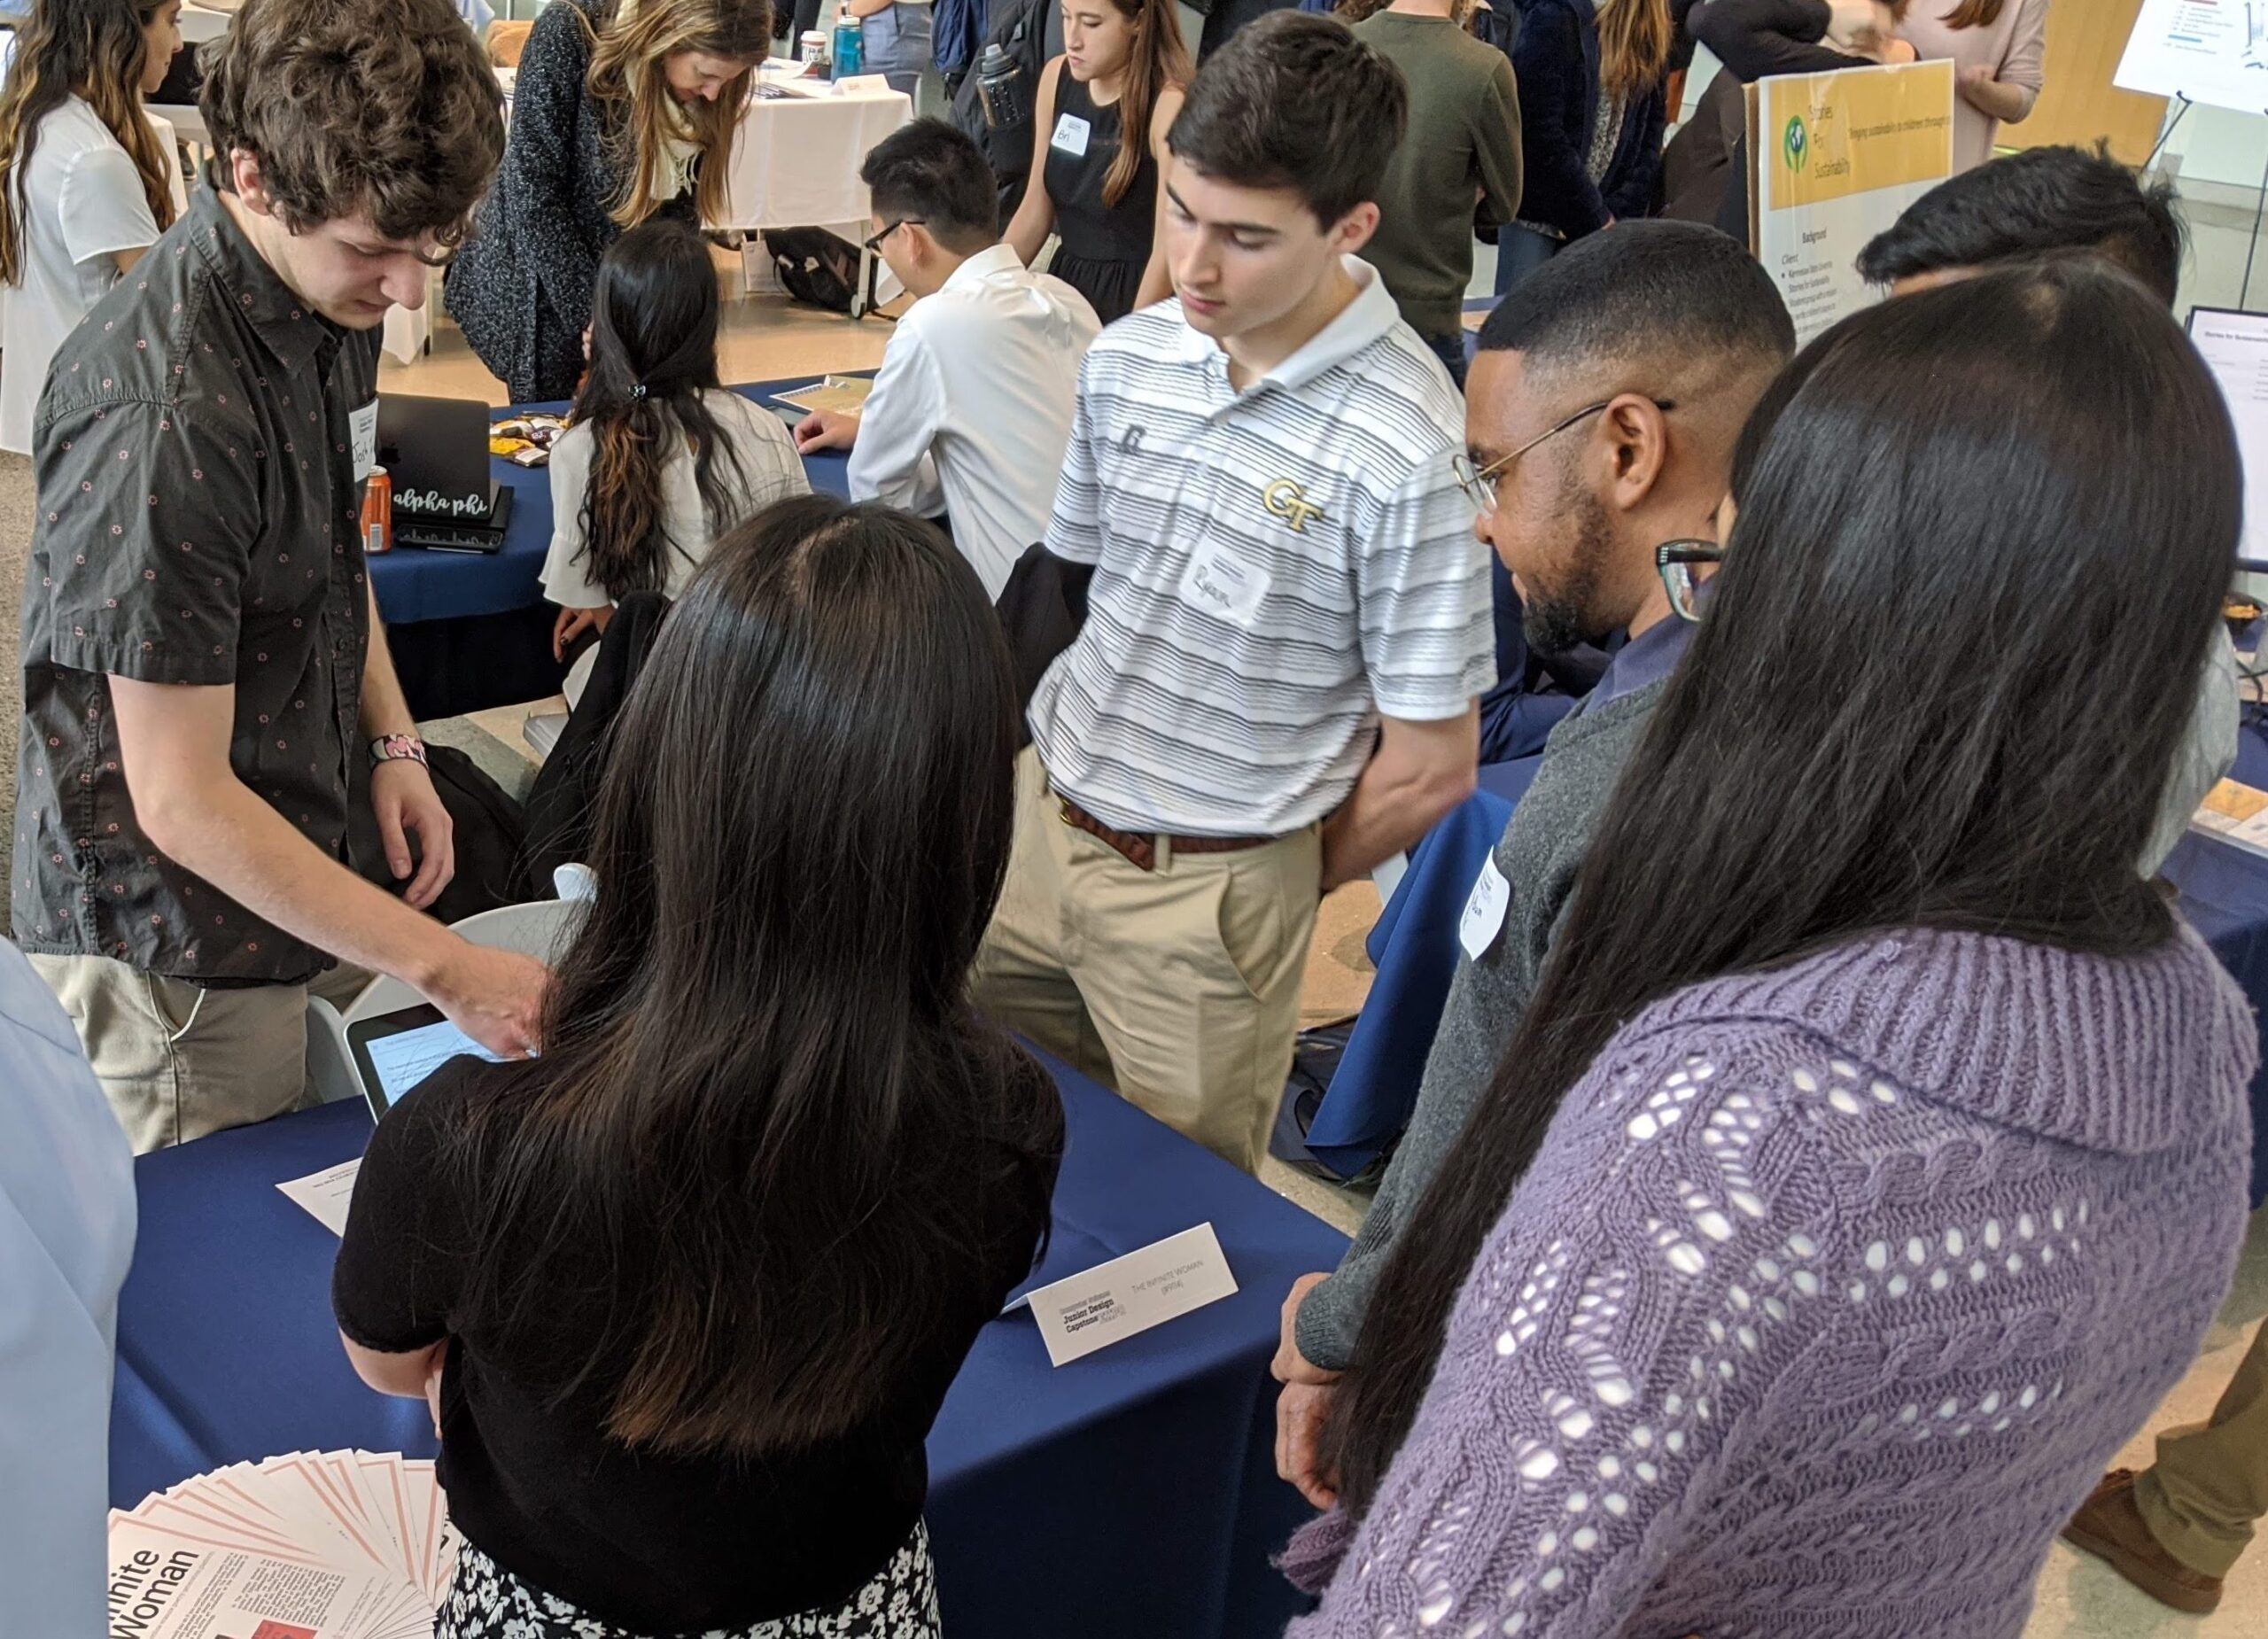 A group of people stand in a circle interacting with a laptop on a table in a busy atrium.